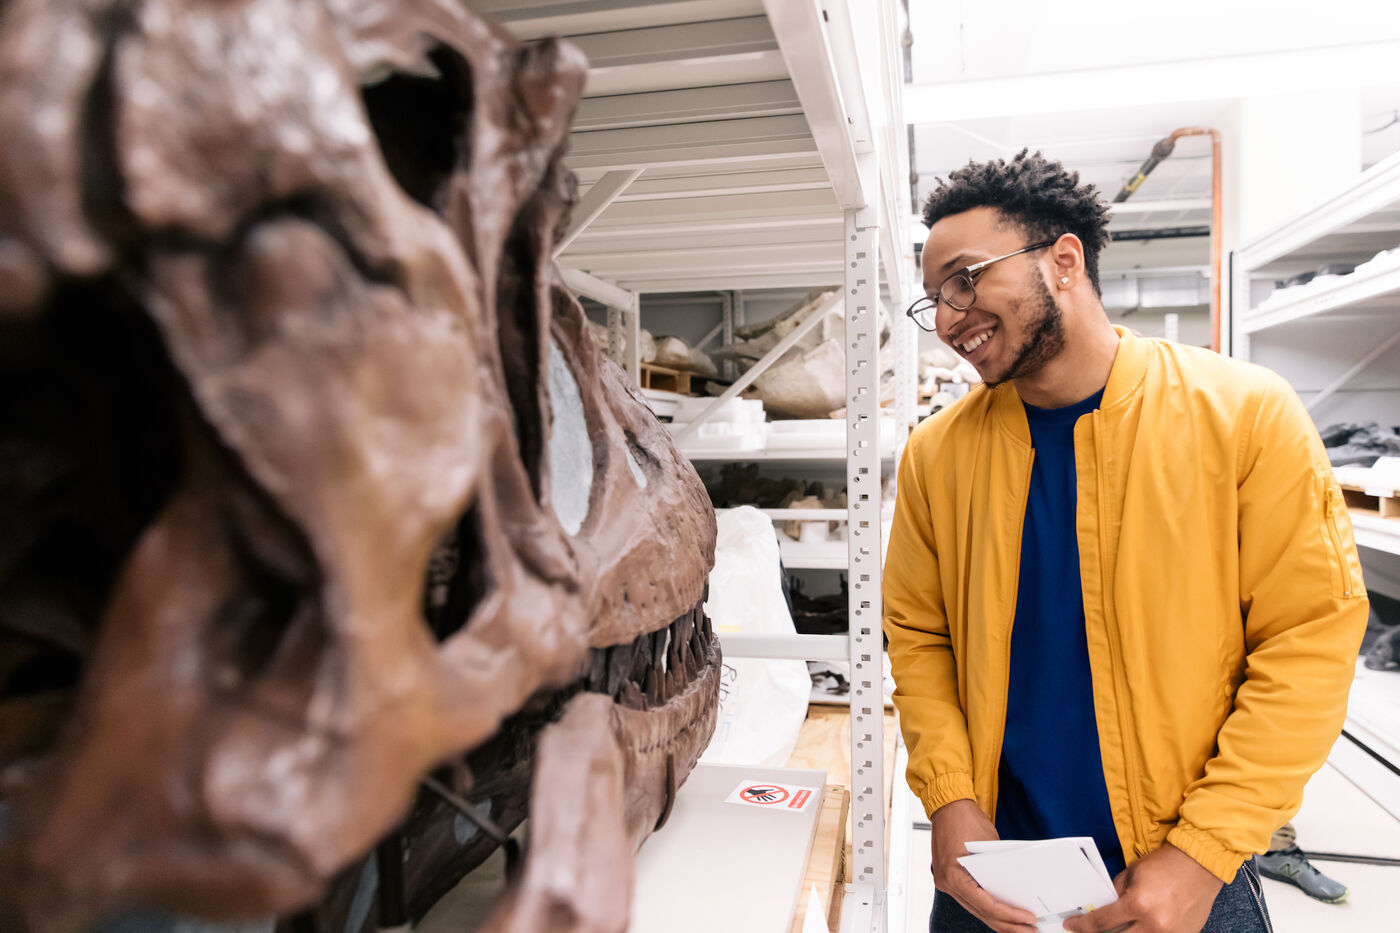 A visitor takes a close look at a fossilized skull. He stands beside the skull, between a row shelves containing other fossil specimens in the Field Museum's collection.